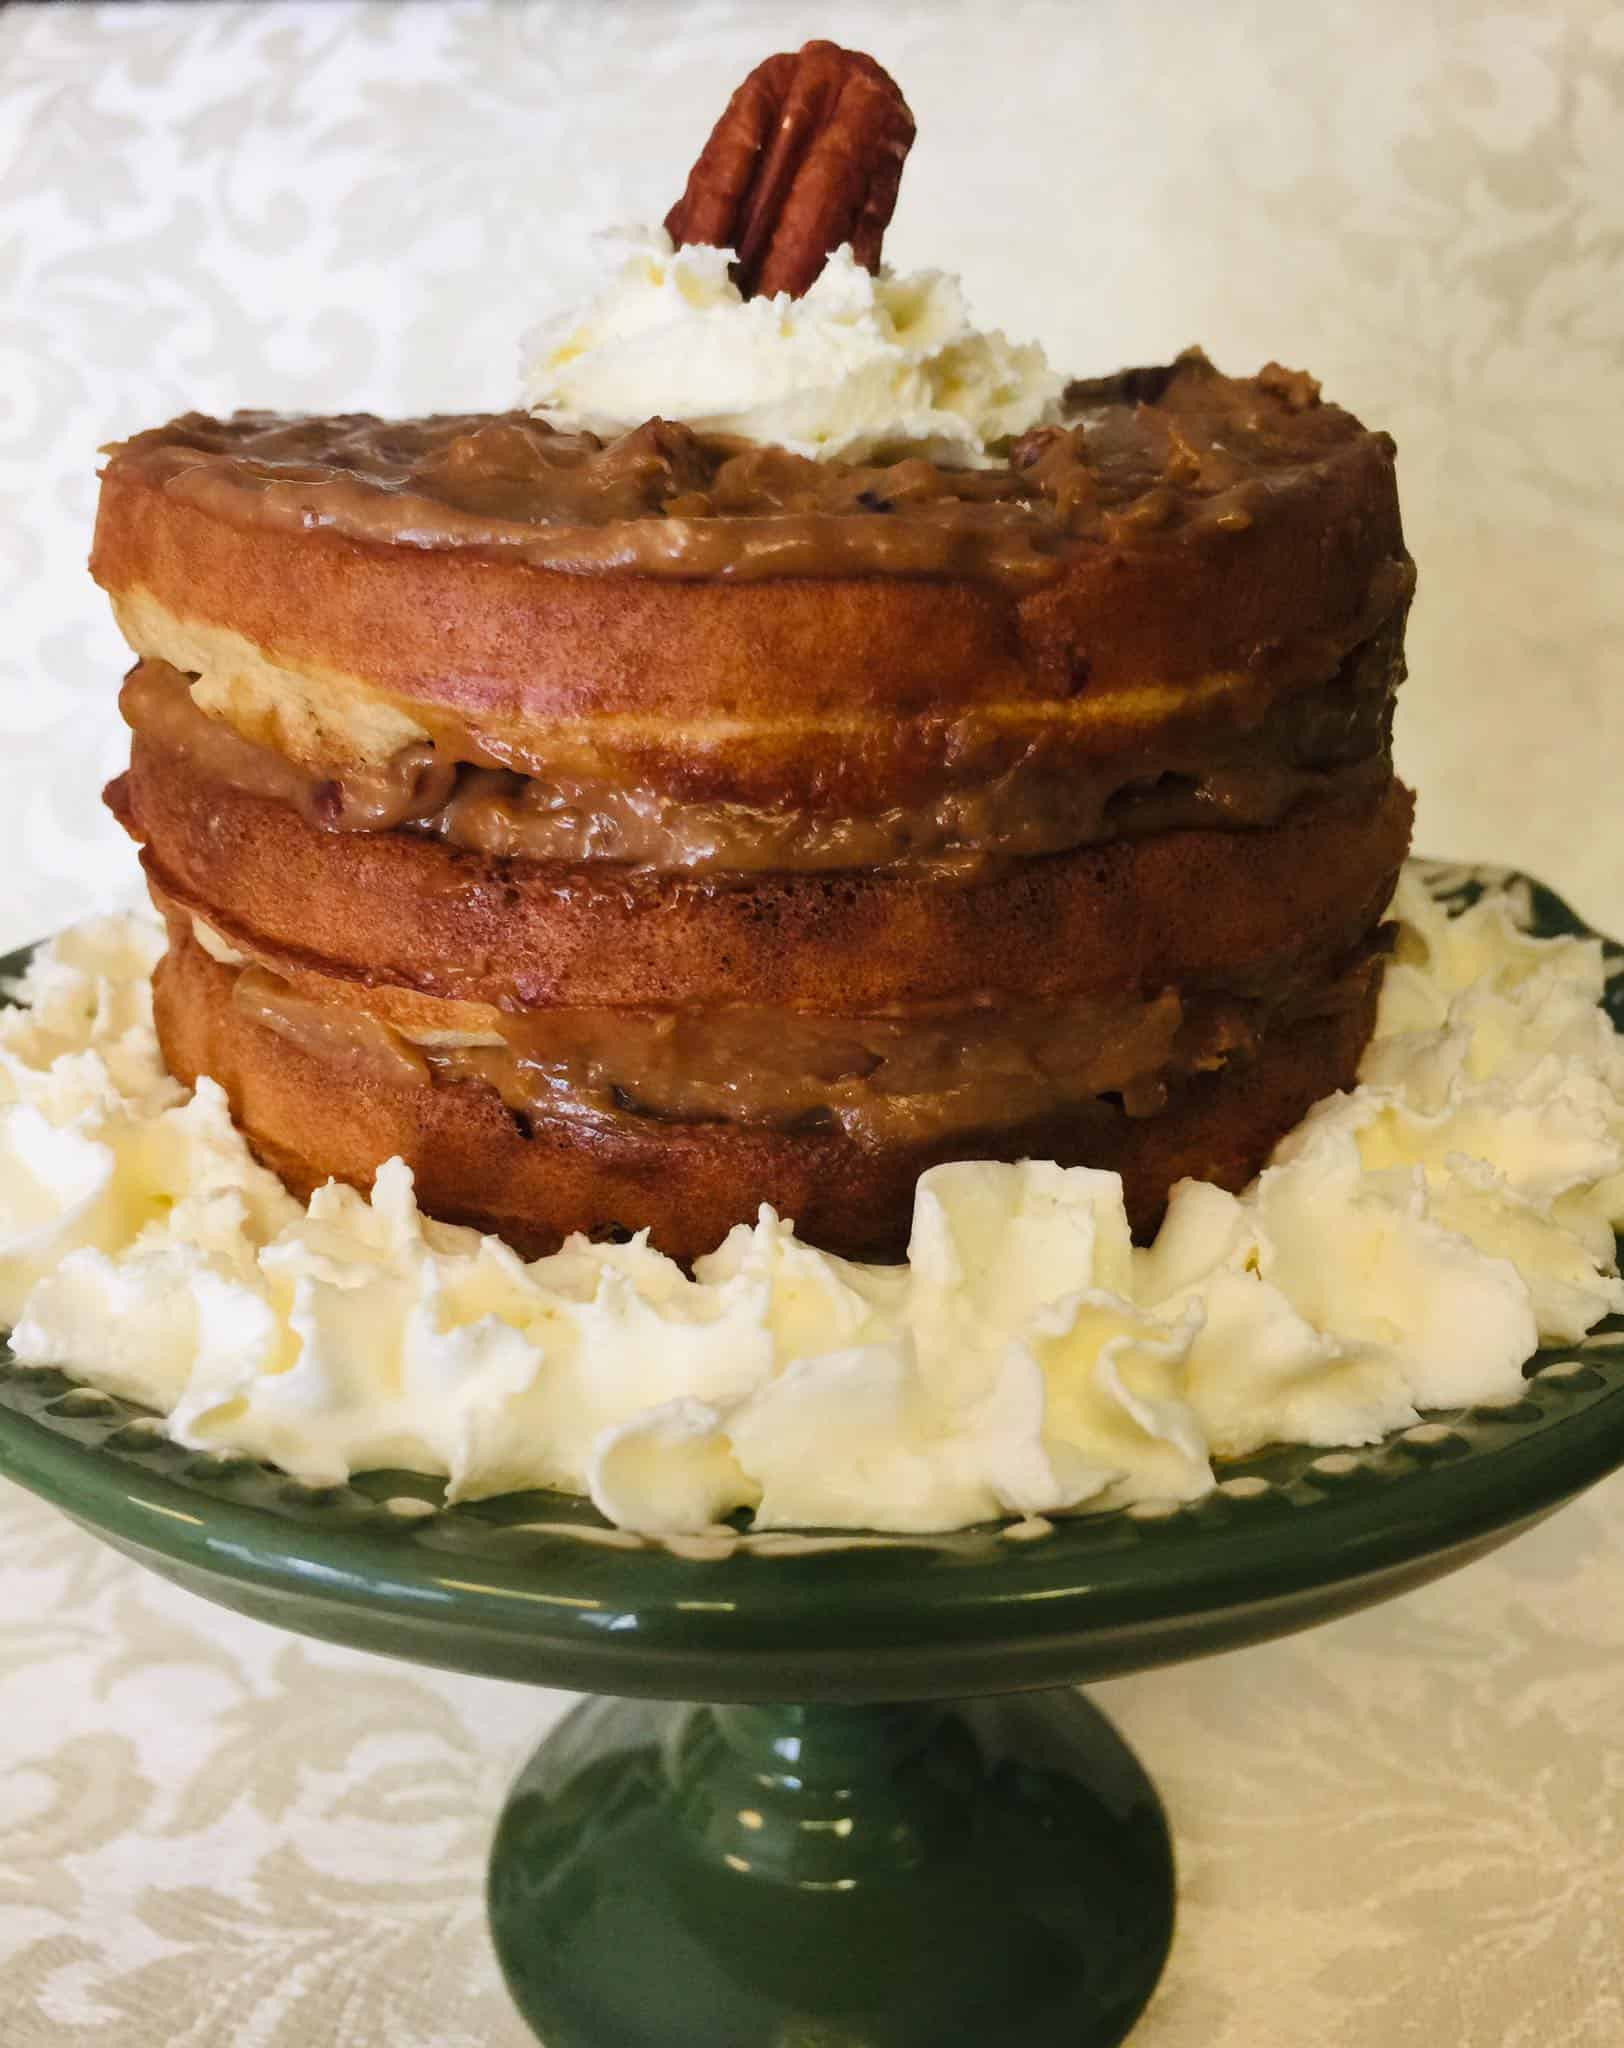 It's fall time, which means pecan season is here!! If you are from the south or simply love pecan pie...you are goign to love this Pecan Pie Chaffle Cake!